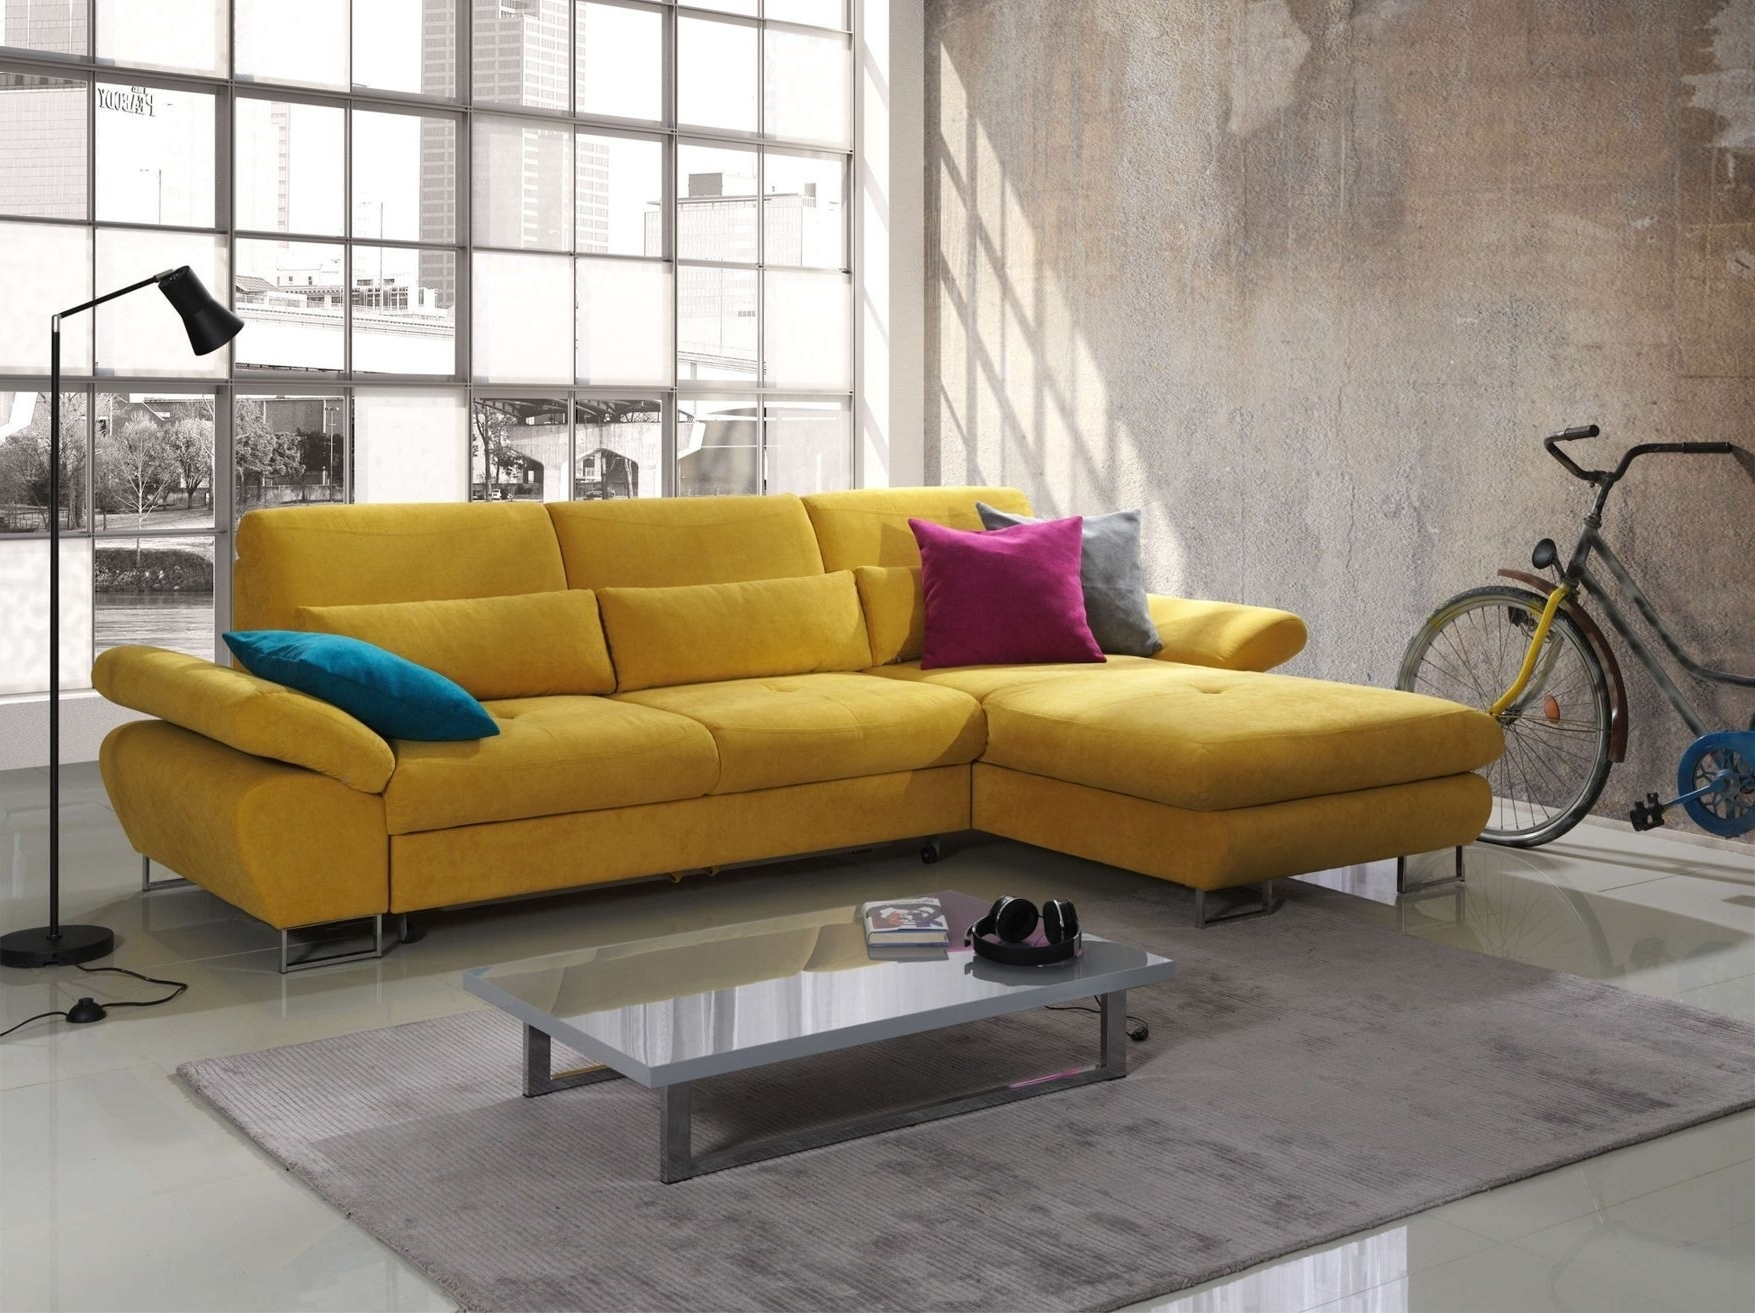 Famous Apartment Sectional Sofas With Chaise For Best Apartment Sectional Sofa With Chaise Images – Liltigertoo (View 3 of 15)